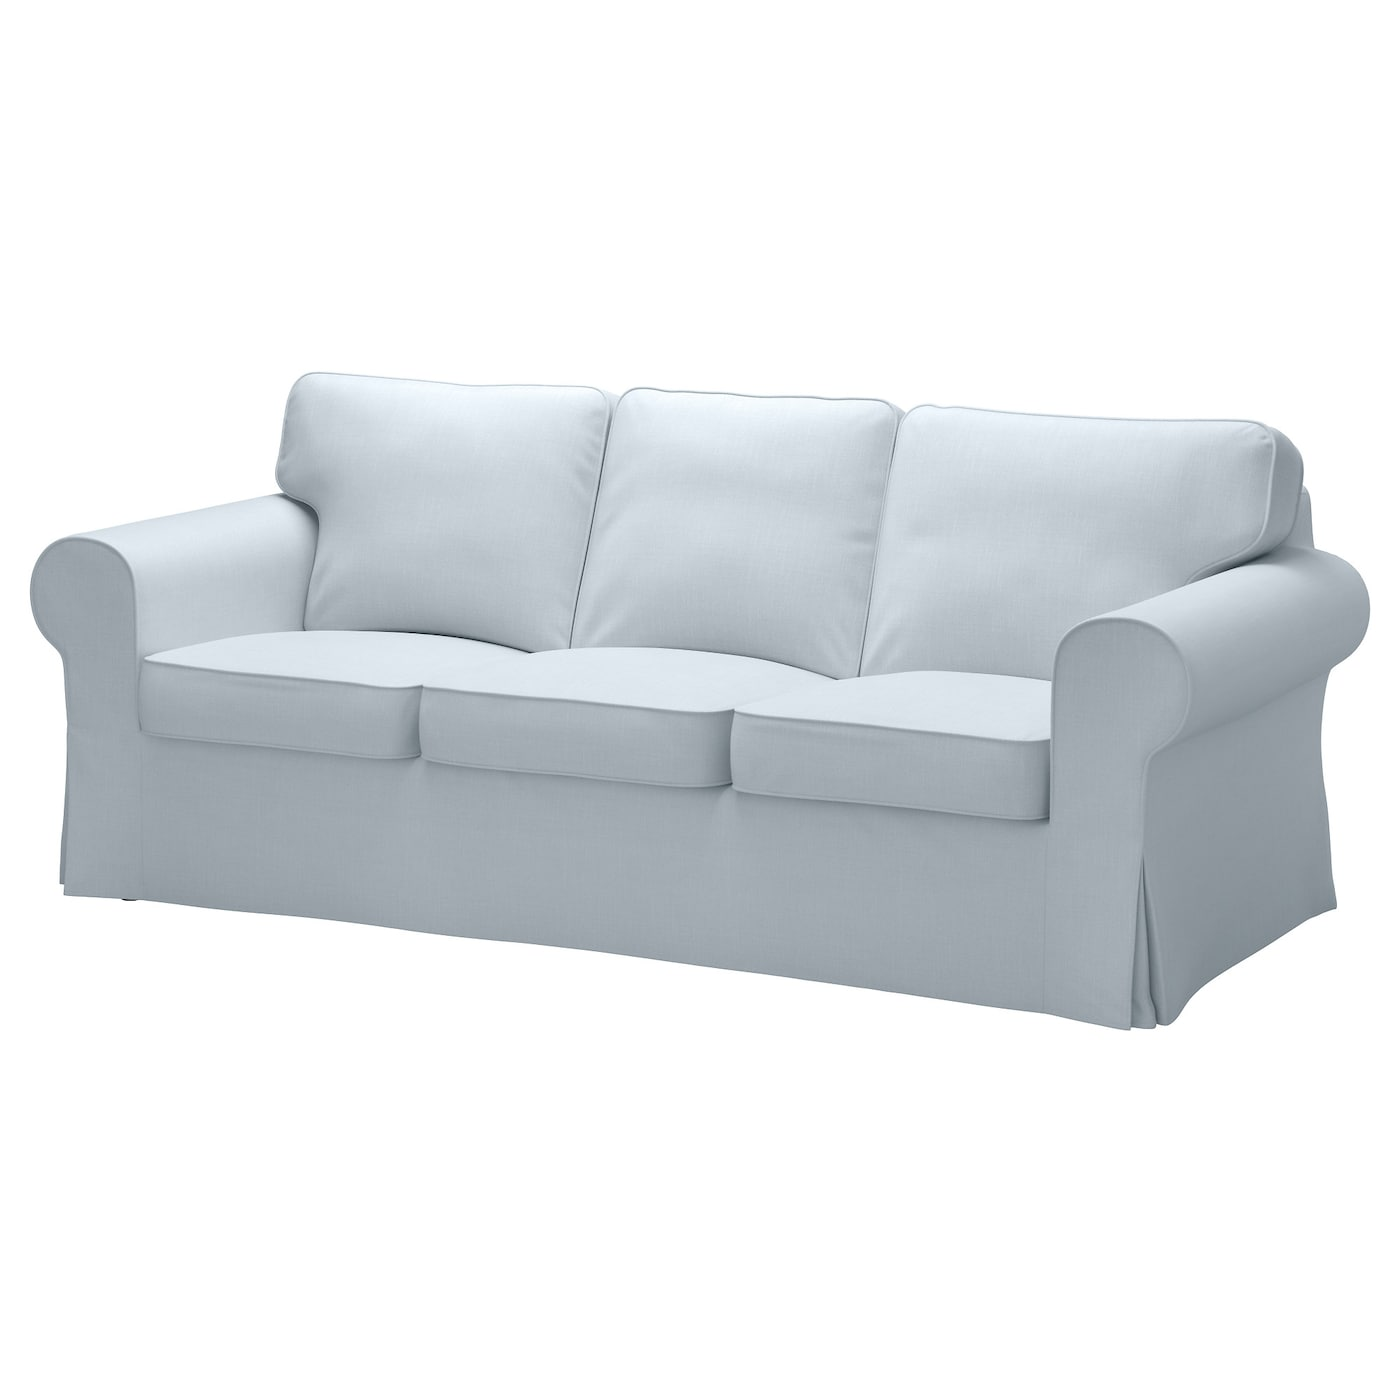 Ektorp three seat sofa nordvalla light blue ikea - Sofa para perros ikea ...